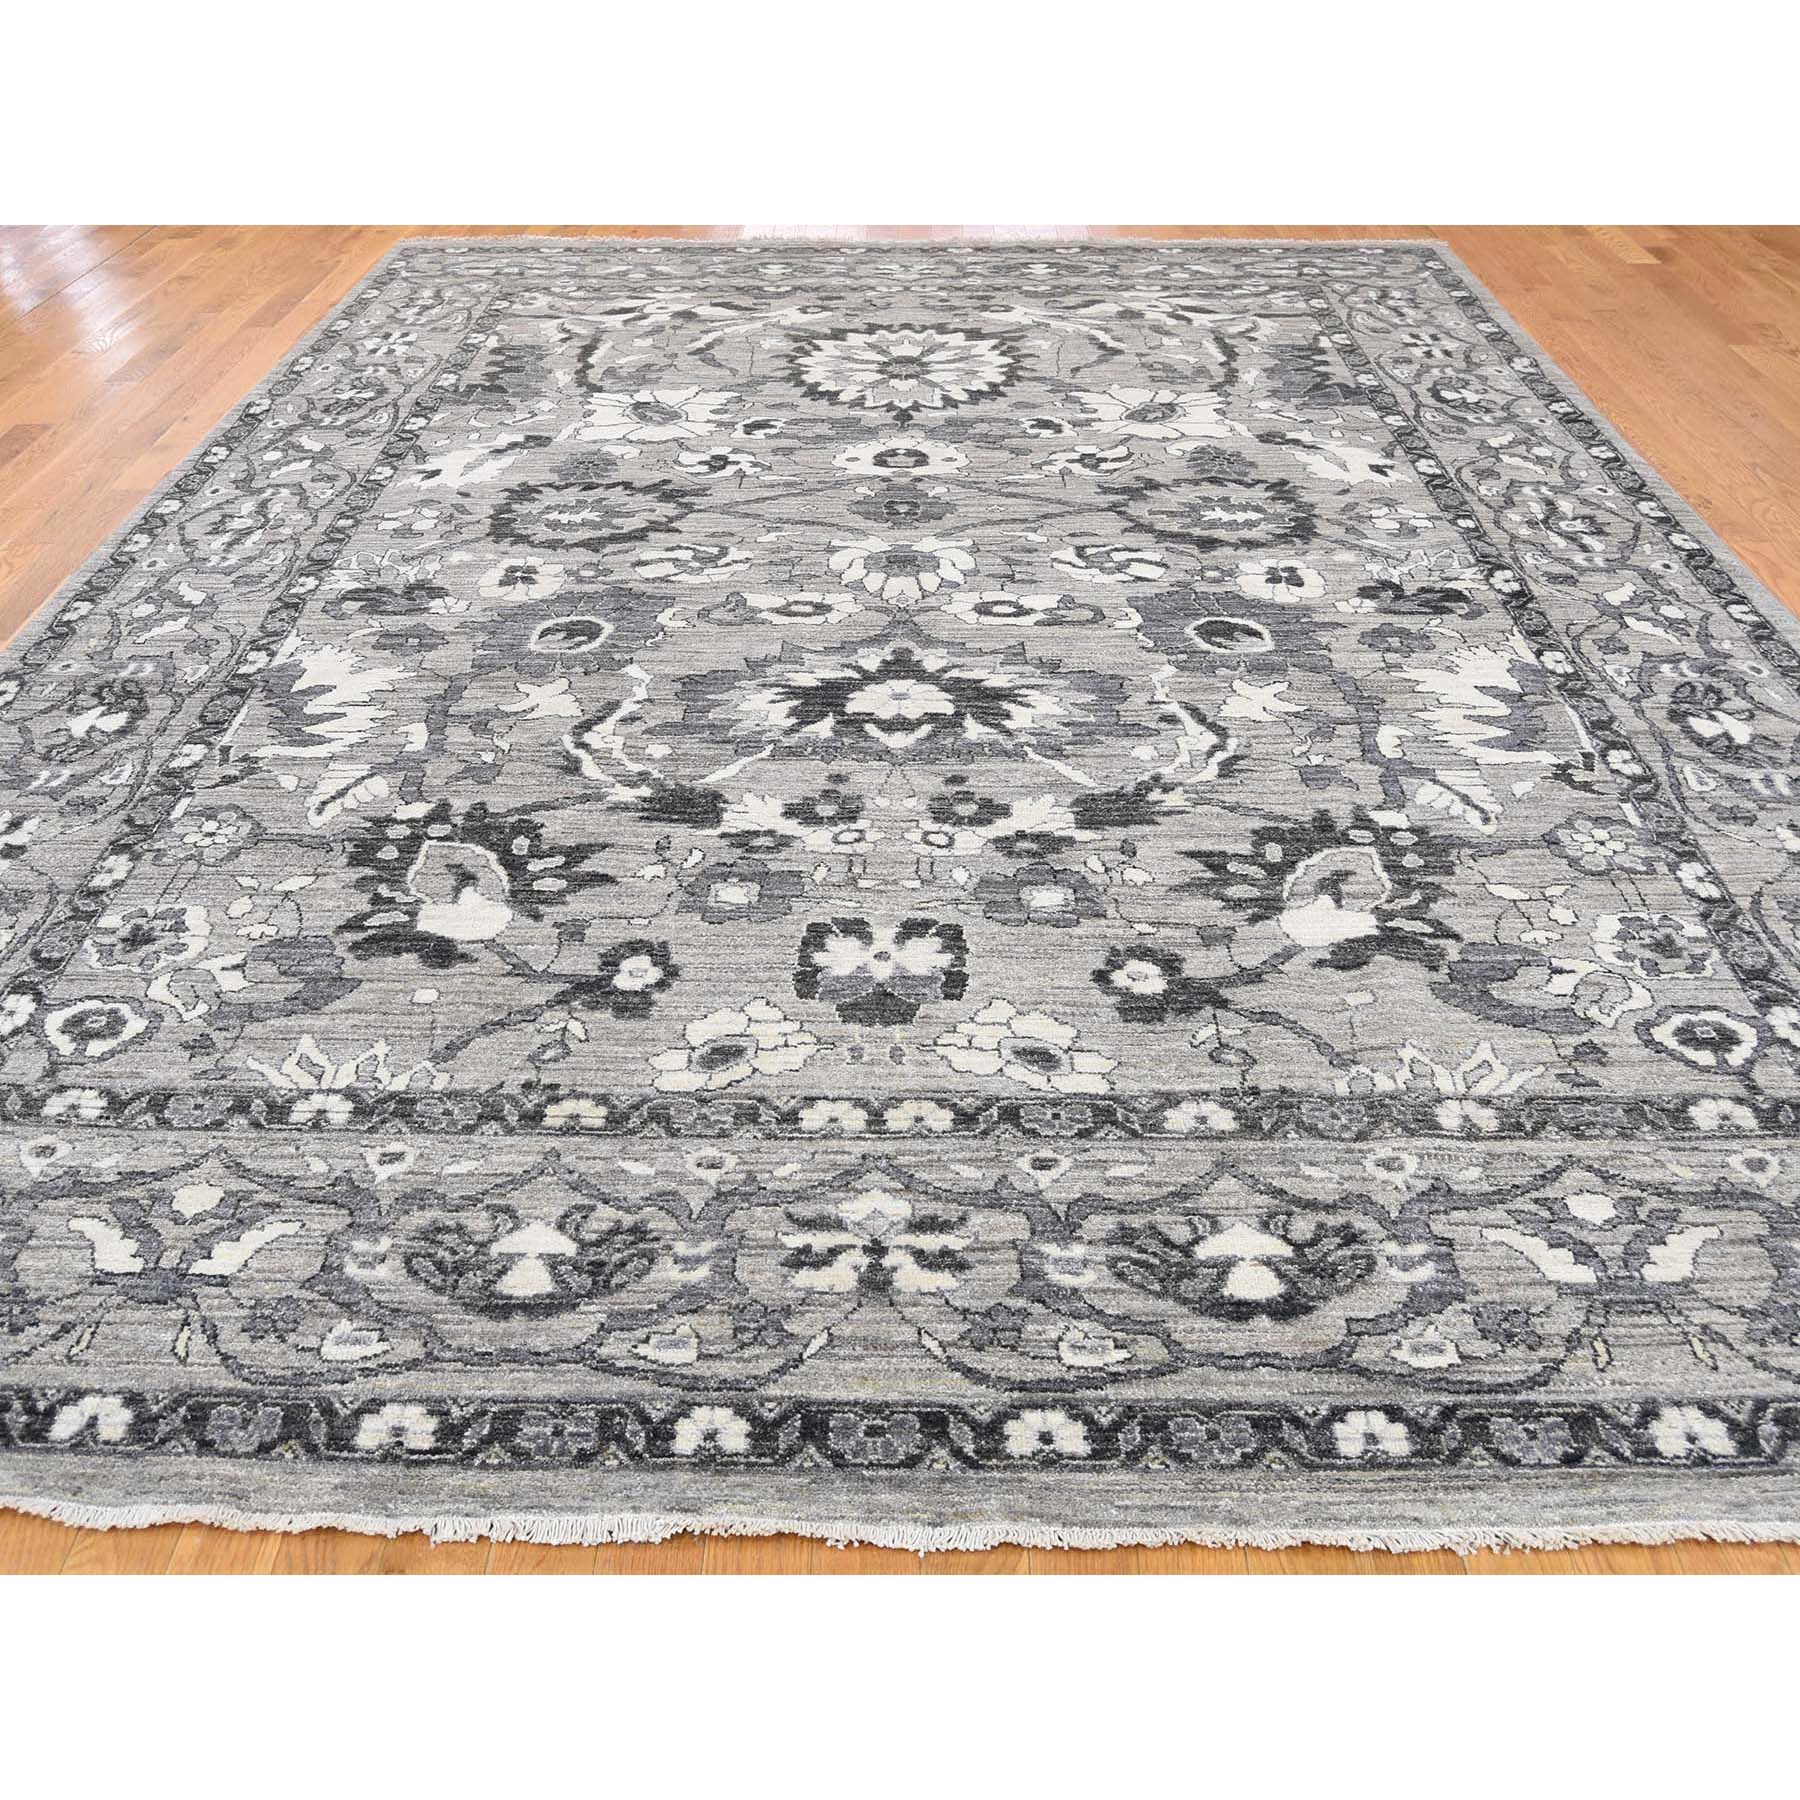 9-x11-7  Heriz Pure Wool with Natural Colors Hand-Knotted Oriental Rug